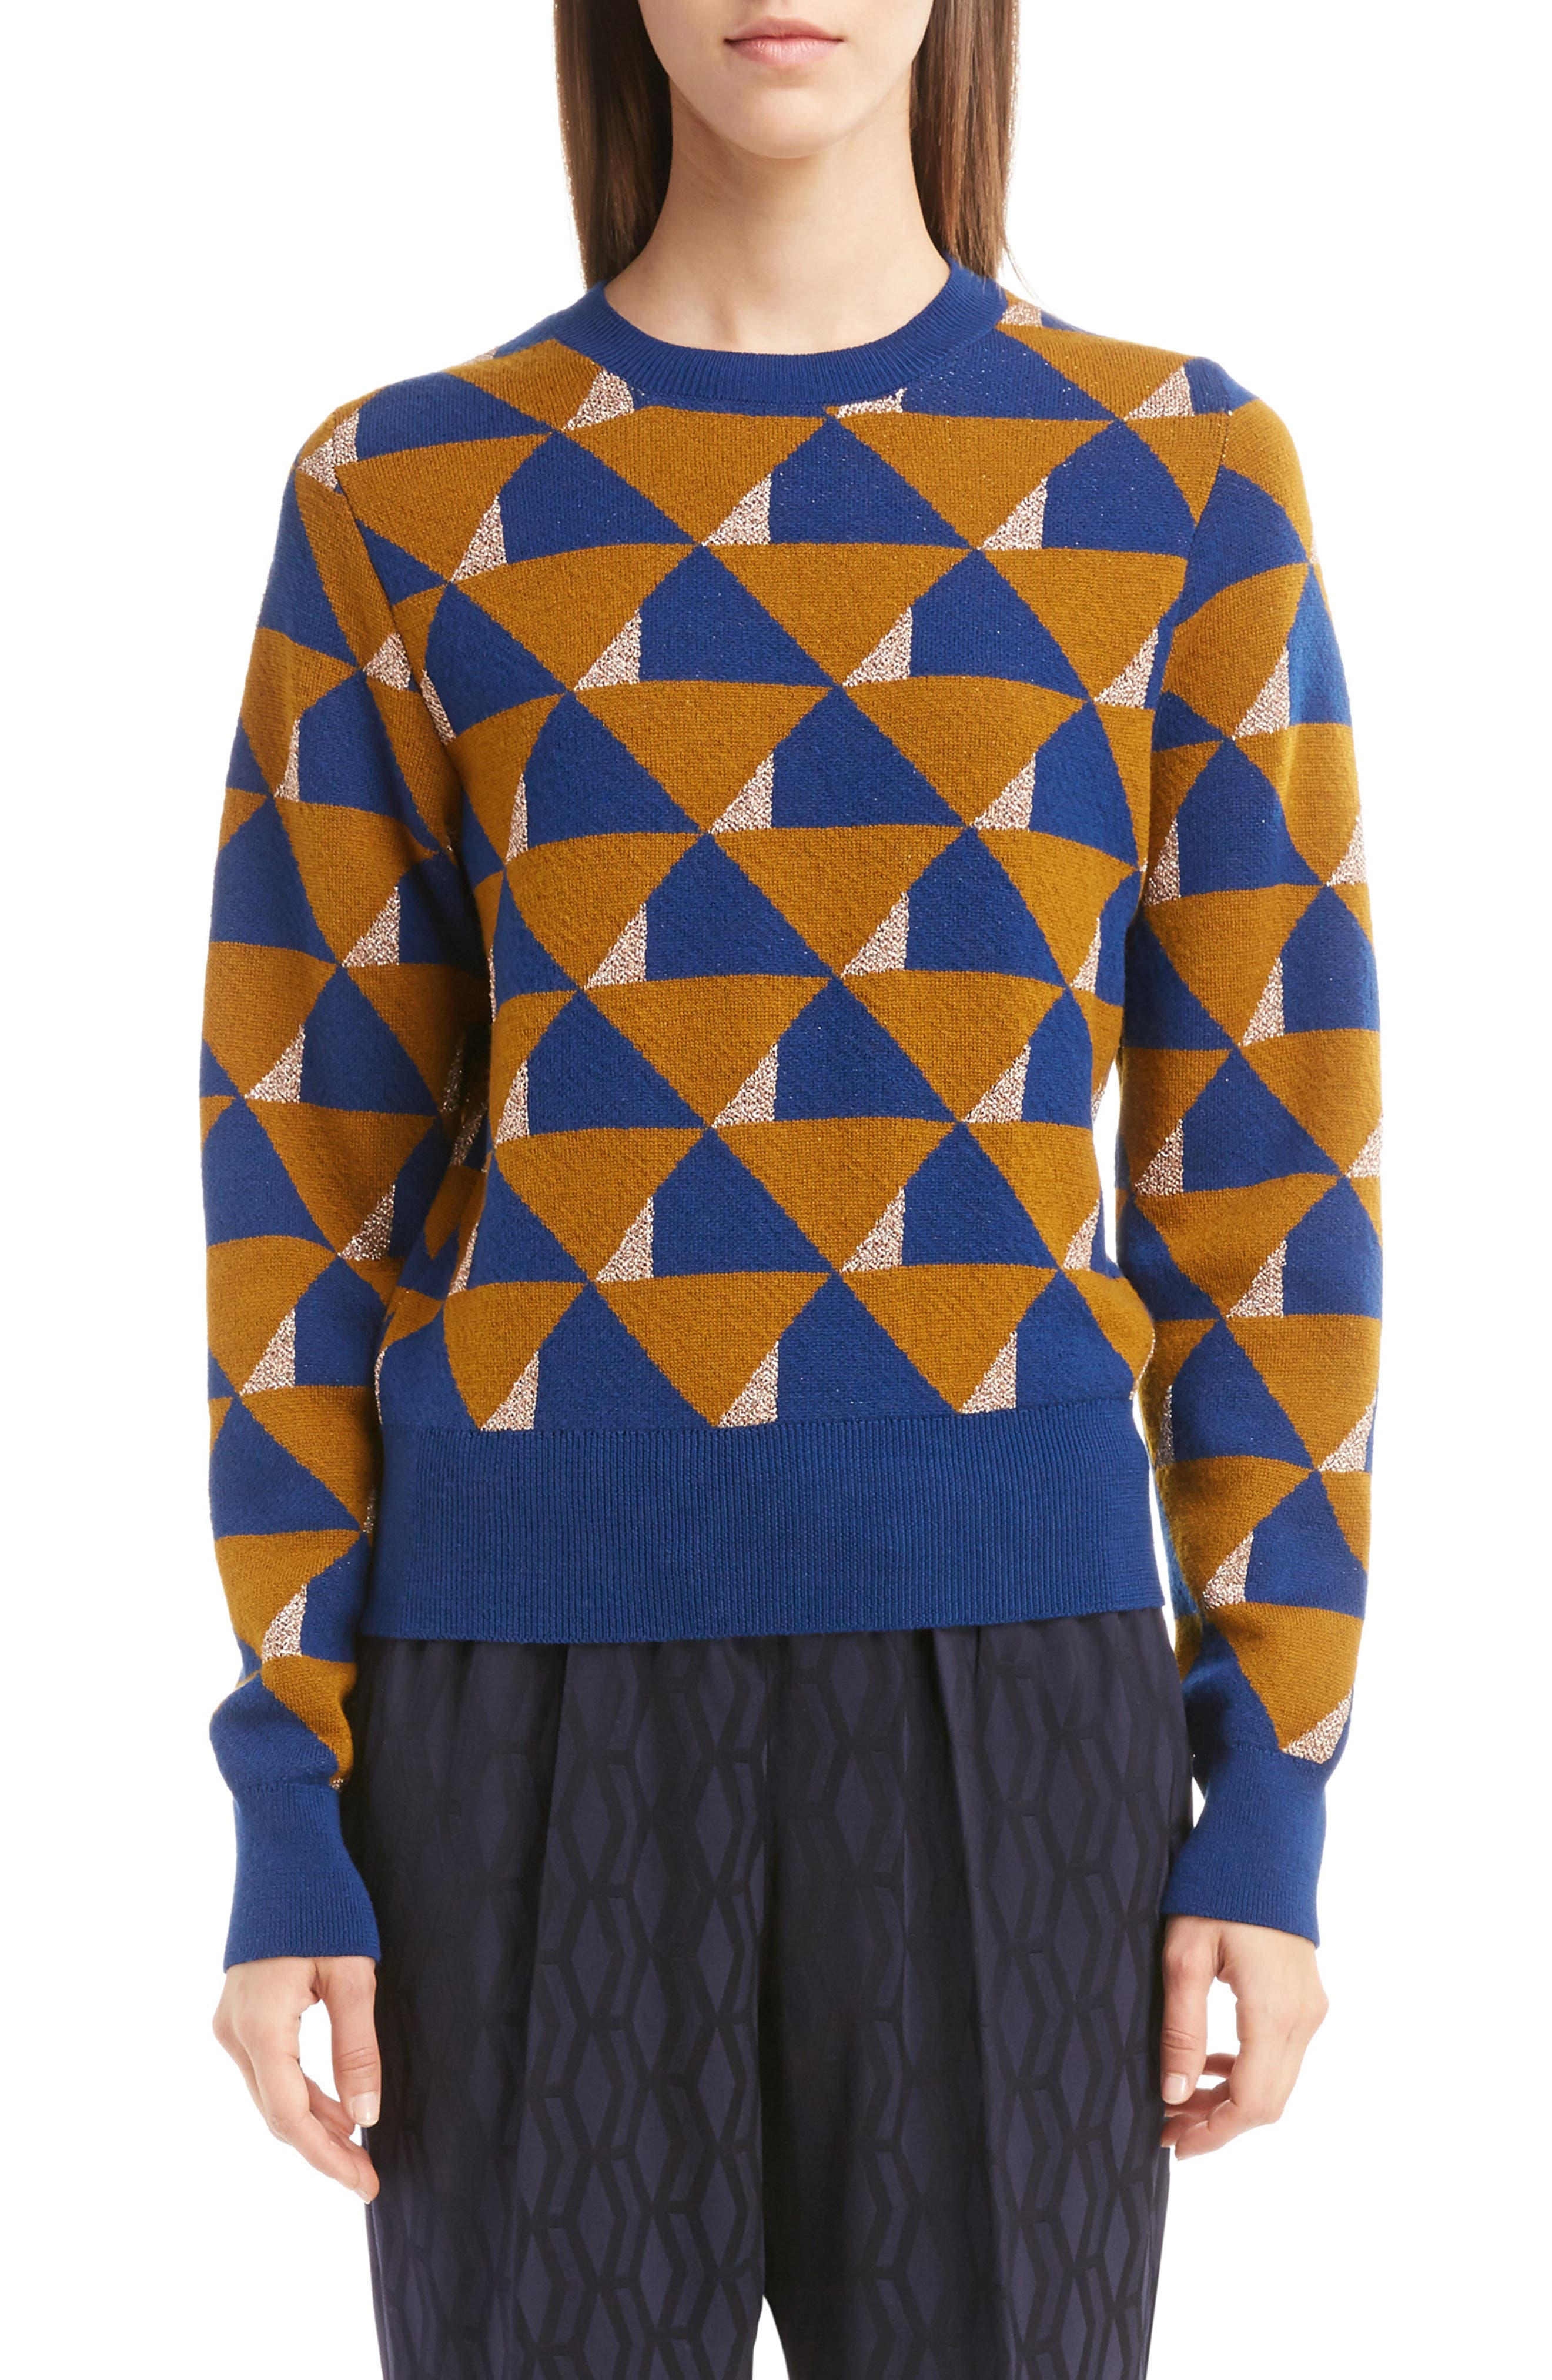 Graphic Knit Merino Wool Sweater,                             Main thumbnail 1, color,                             400